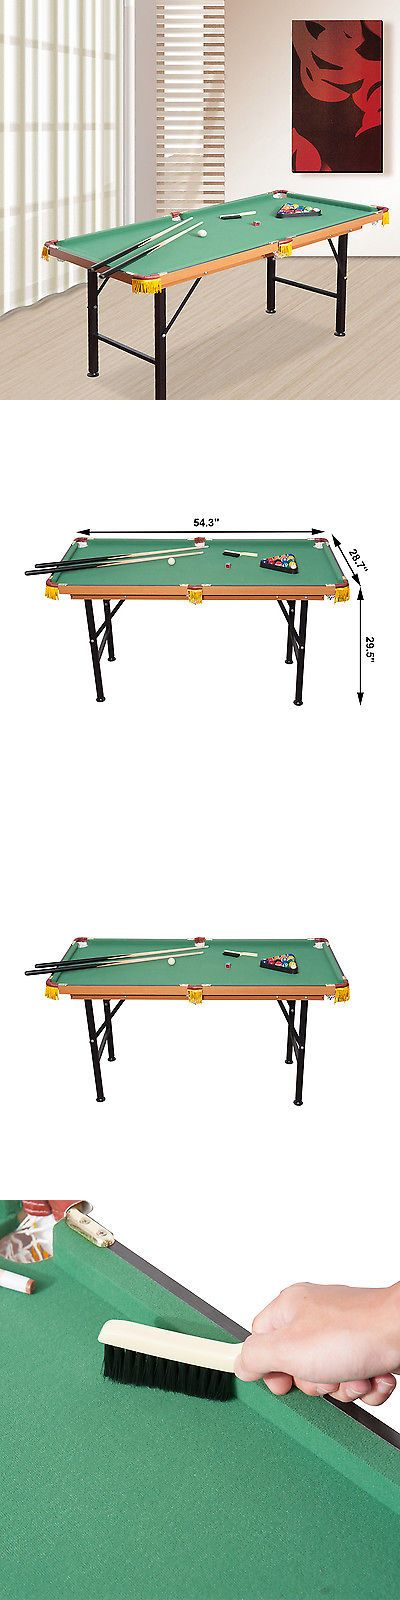 Tables 21213: Soozier 4.5Ft Mini Foldable Pool Table Portable Billiard Table Full Set W/ Balls BUY IT NOW ONLY: $124.19